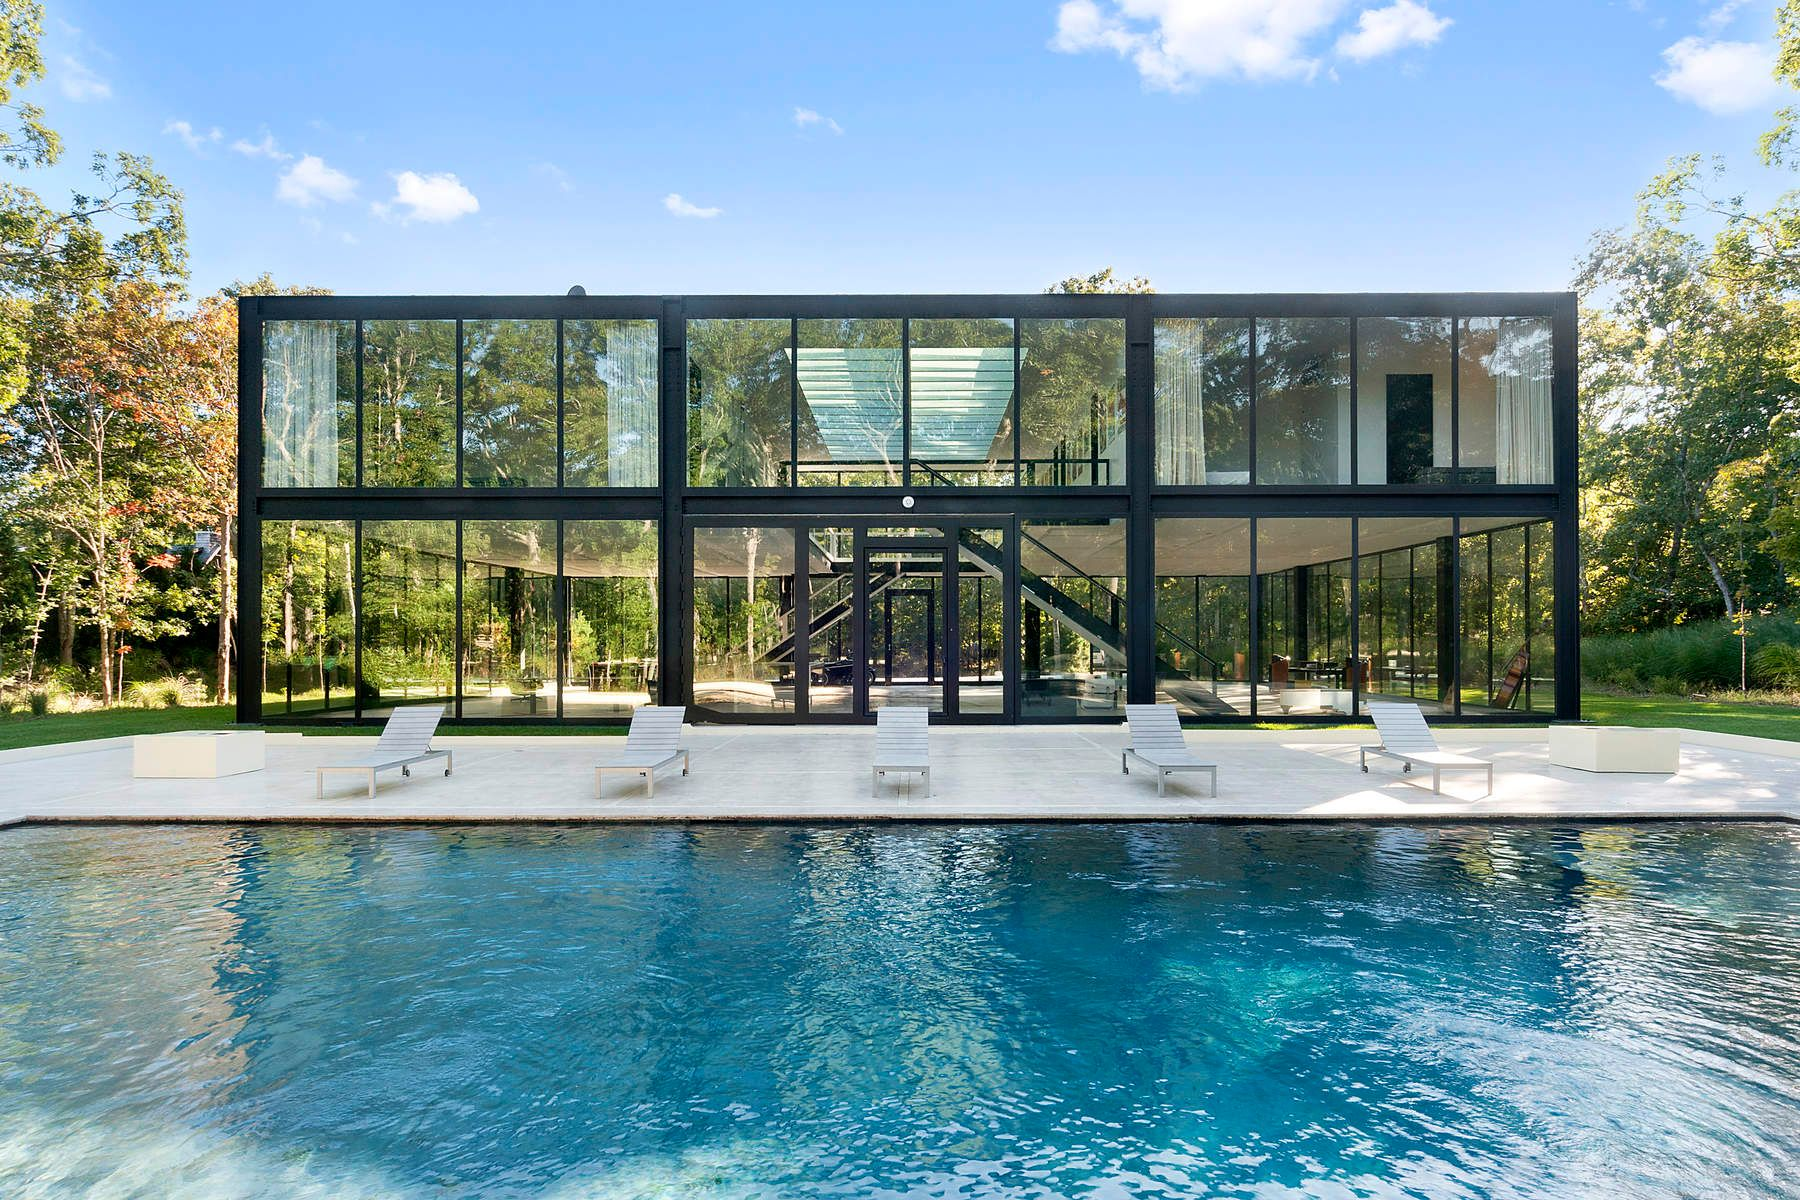 Single Family Home for Active at Live, Entertain, Showcase Events 145 Neck Path East Hampton, New York 11937 United States